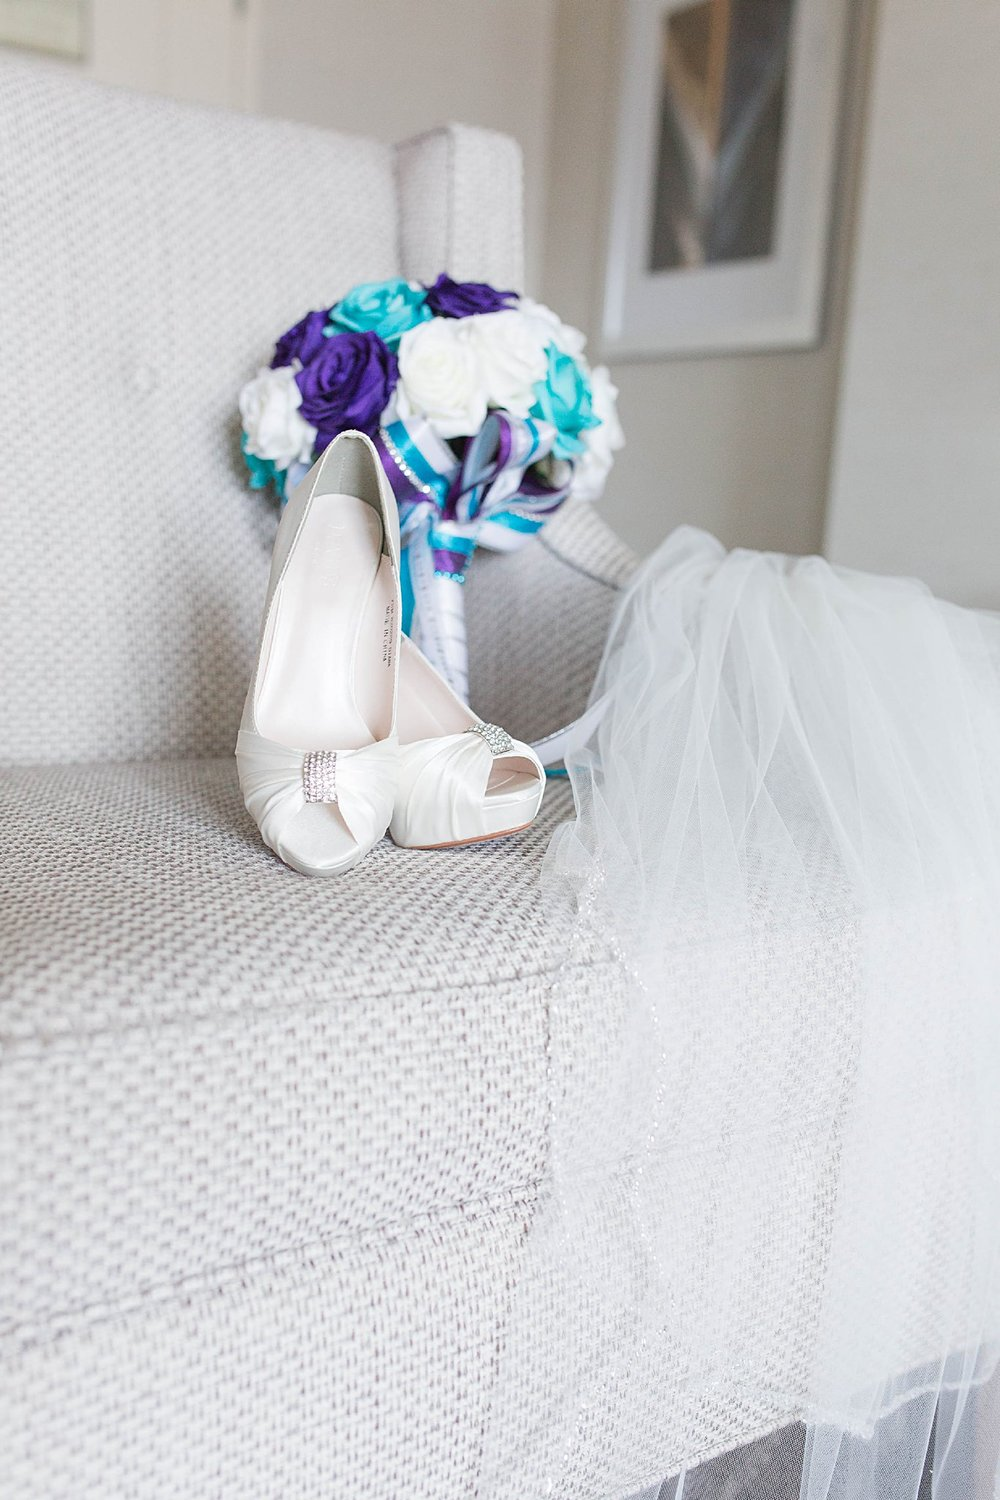 hope-taylor-workshop-marie-antoinette-styled-wedding-shoot_0238.jpg